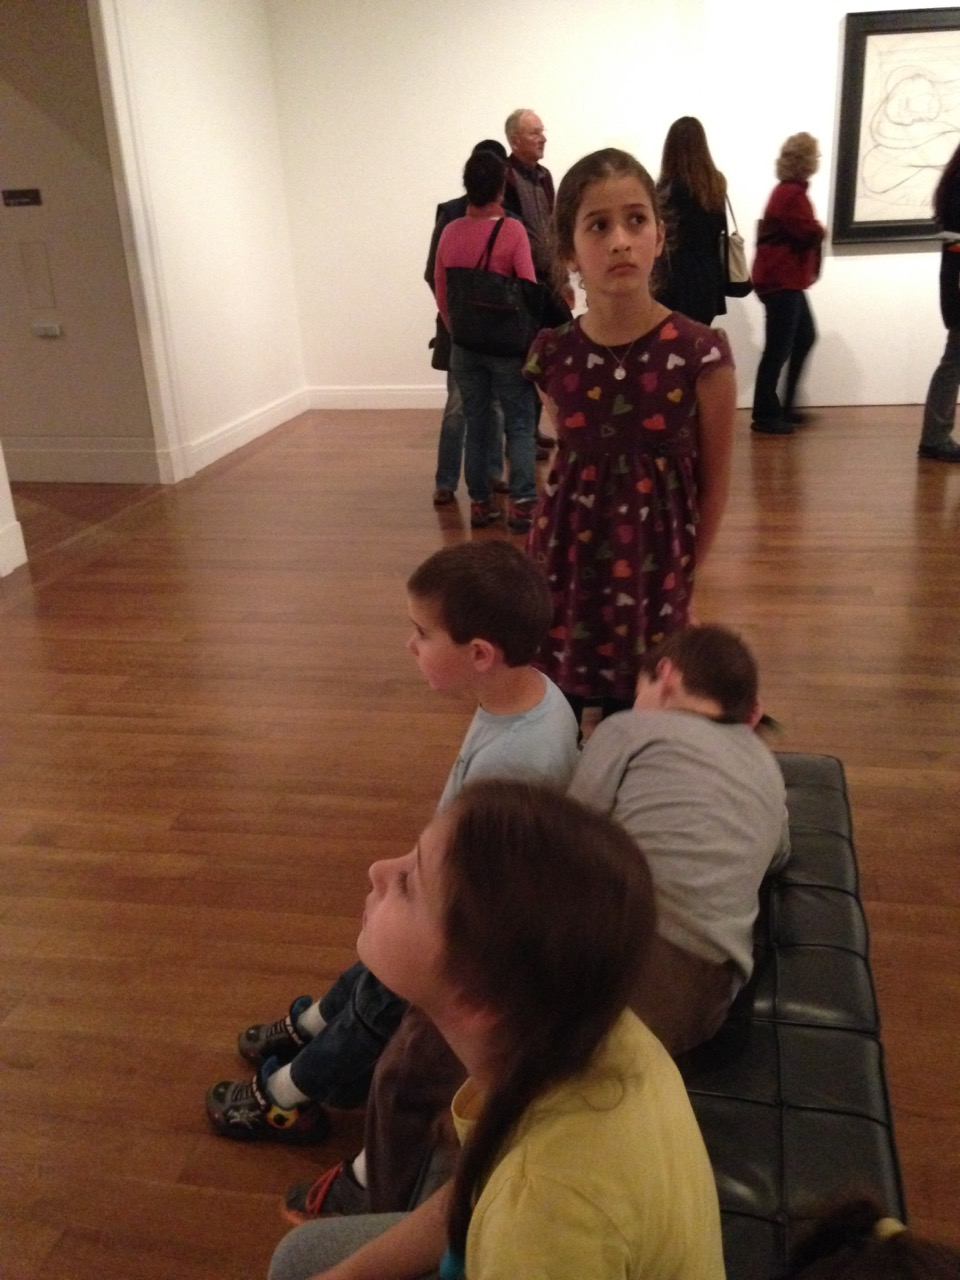 Everyone else plopped down to wait while Sophie and I explored the world of Picasso.